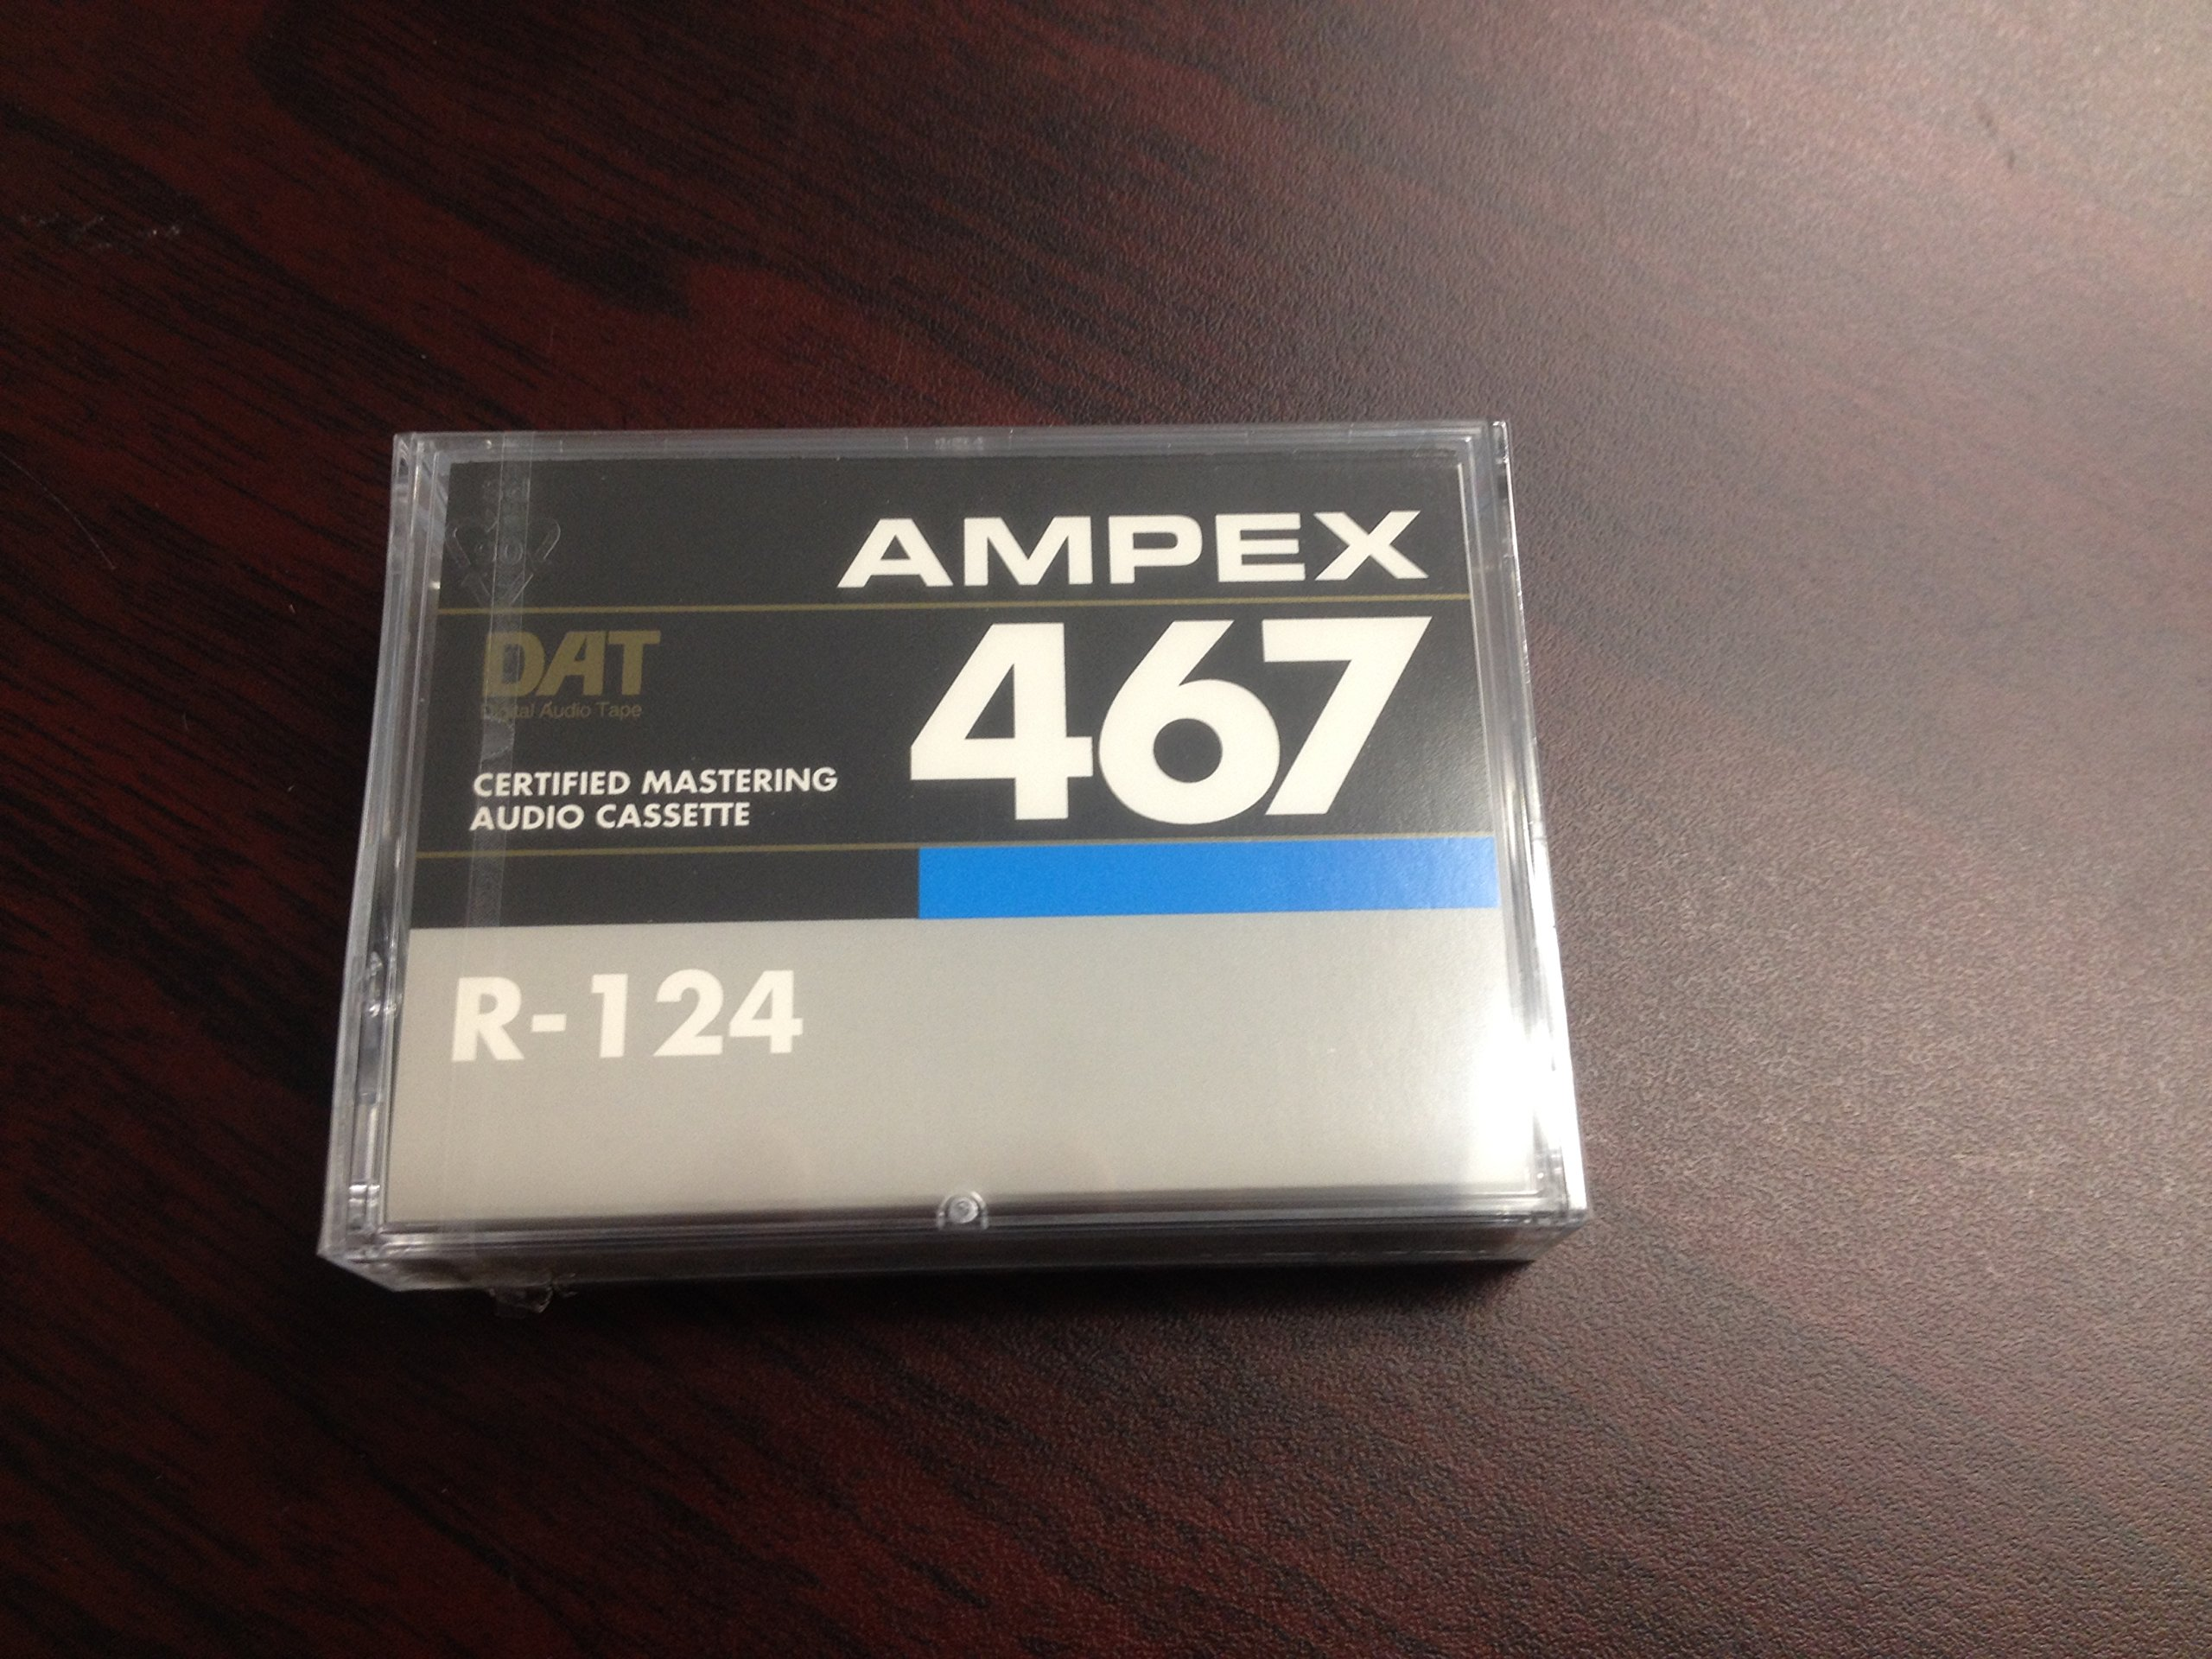 Ampex/ Quantegy 467- 124 Minute Certified Mastering DAT Audio Cassette10-Pack by Ampex/ Quantegy